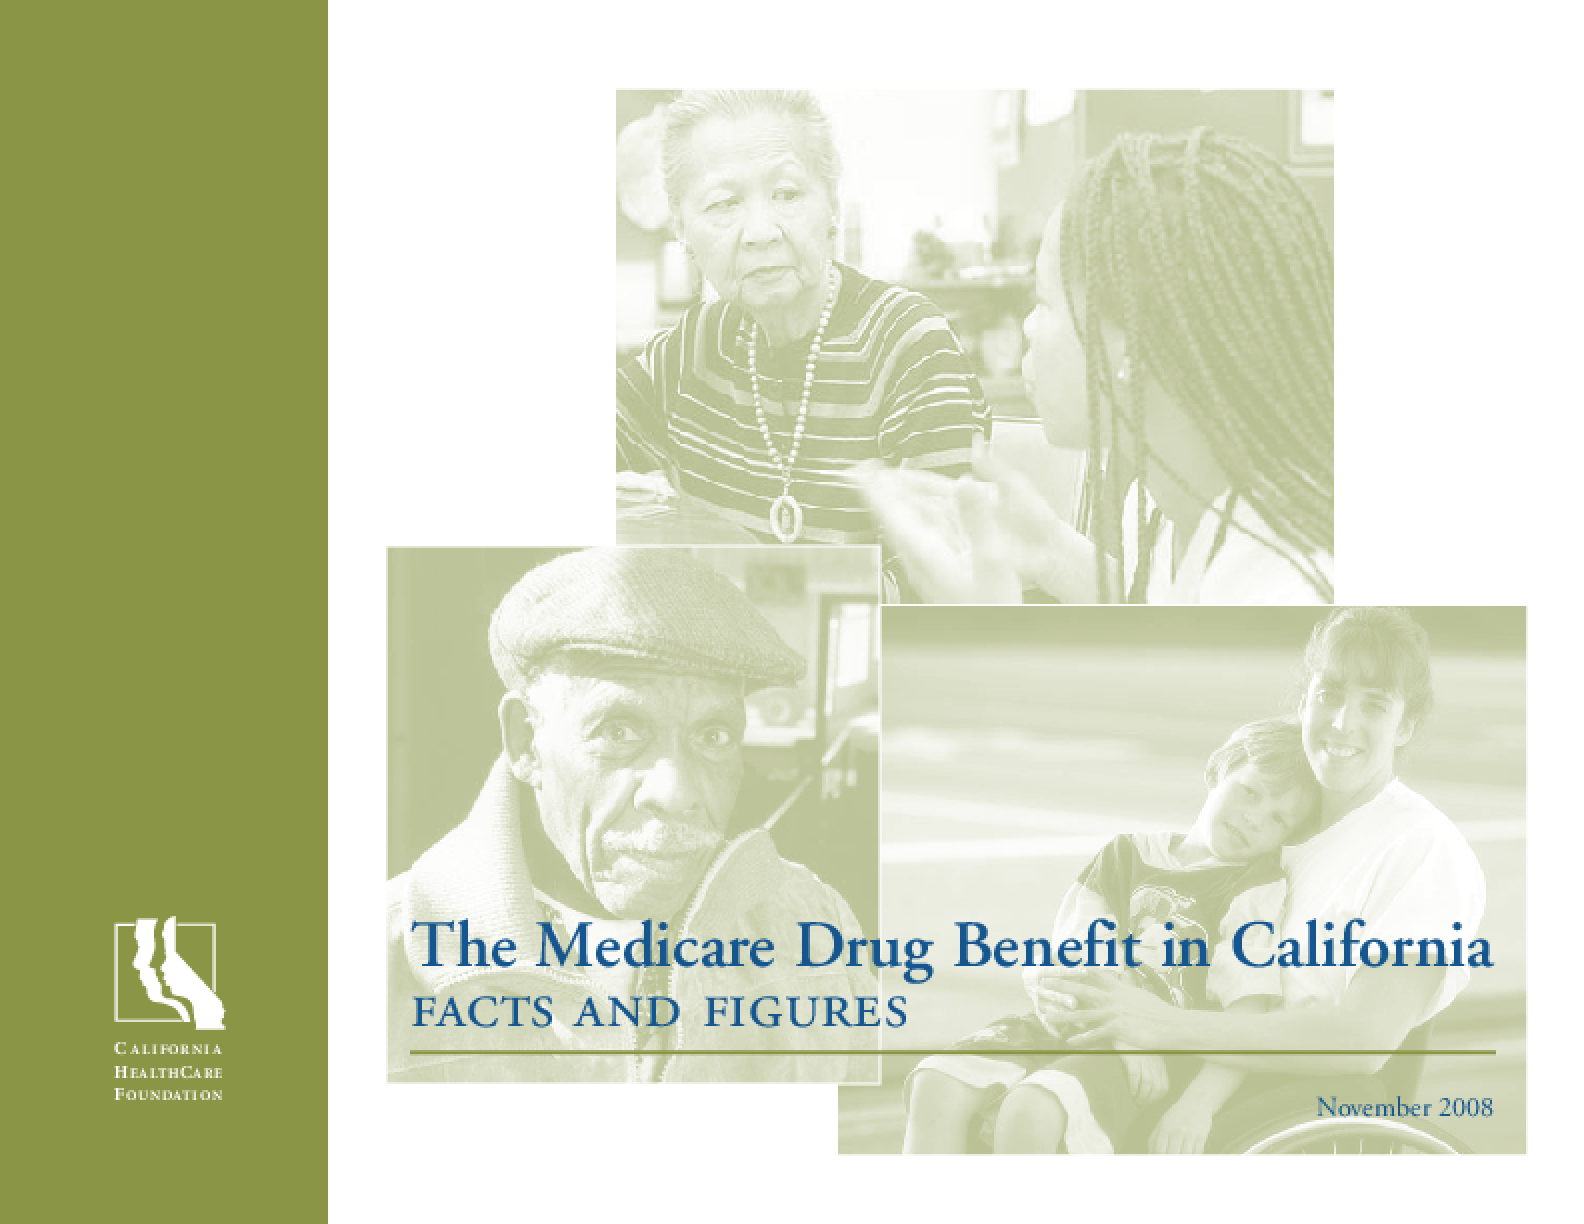 The Medicare Drug Benefit in California: Facts and Figures